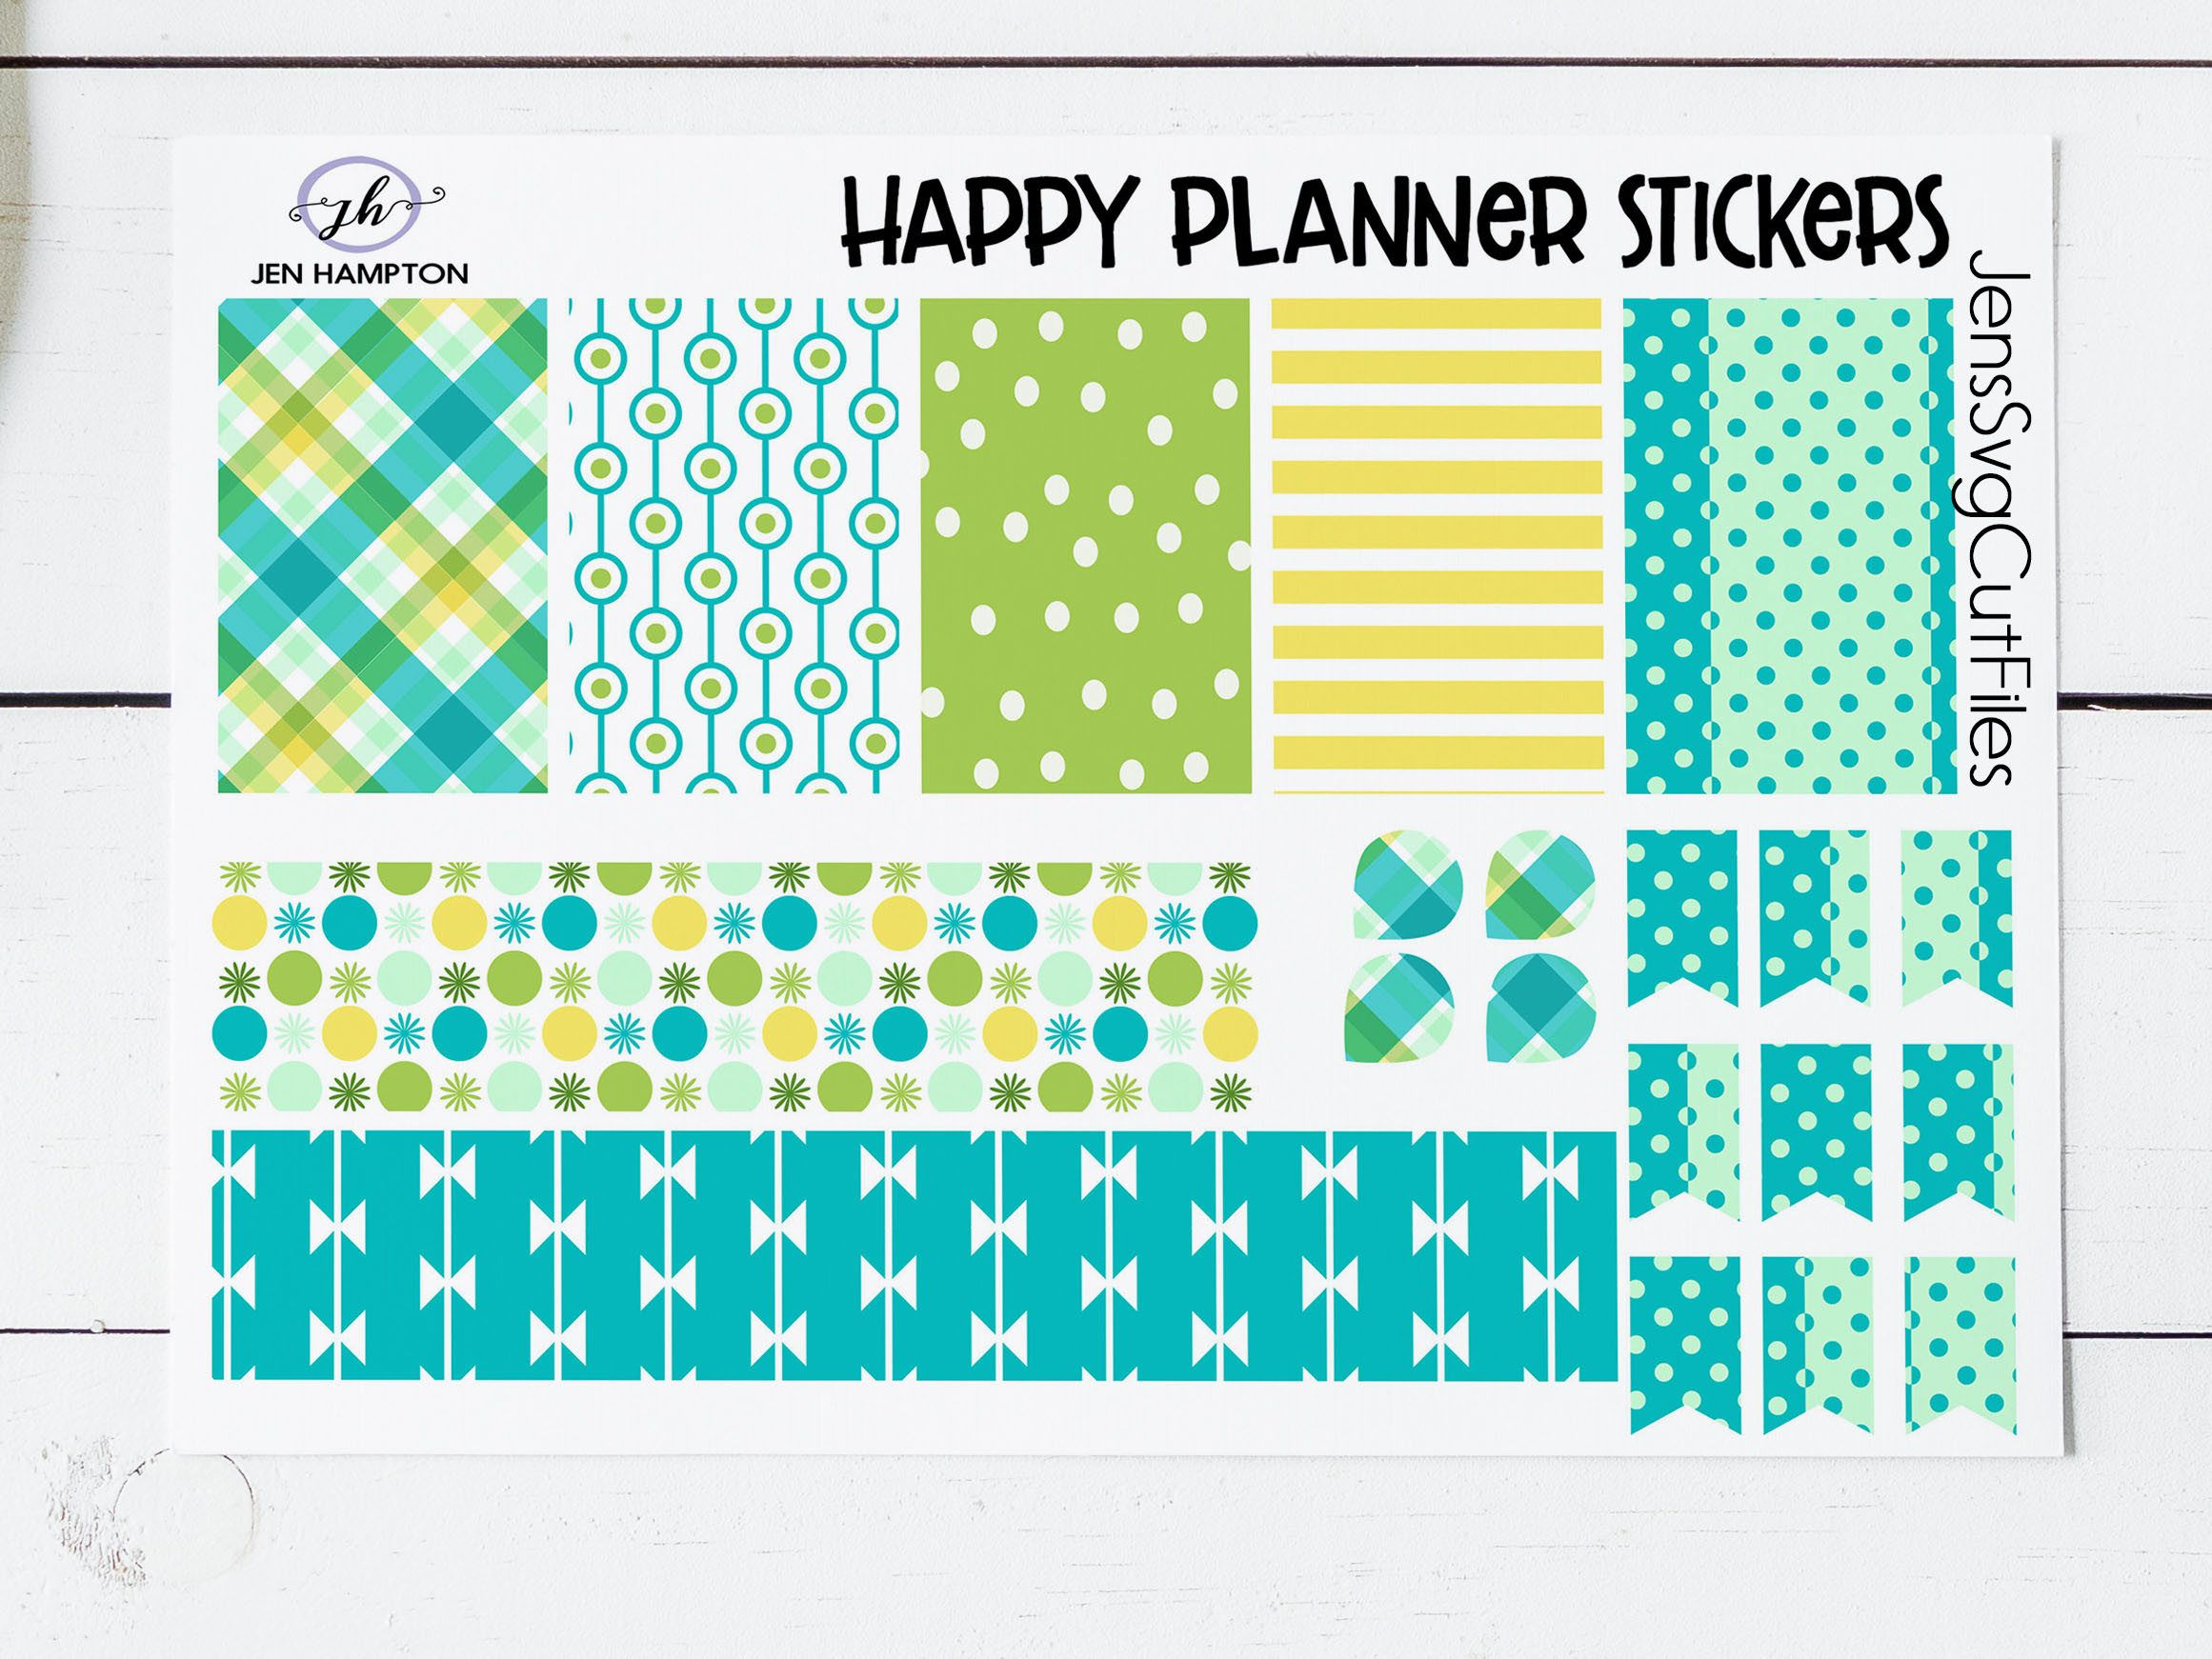 free happy planner sticker template psd great for cricut users